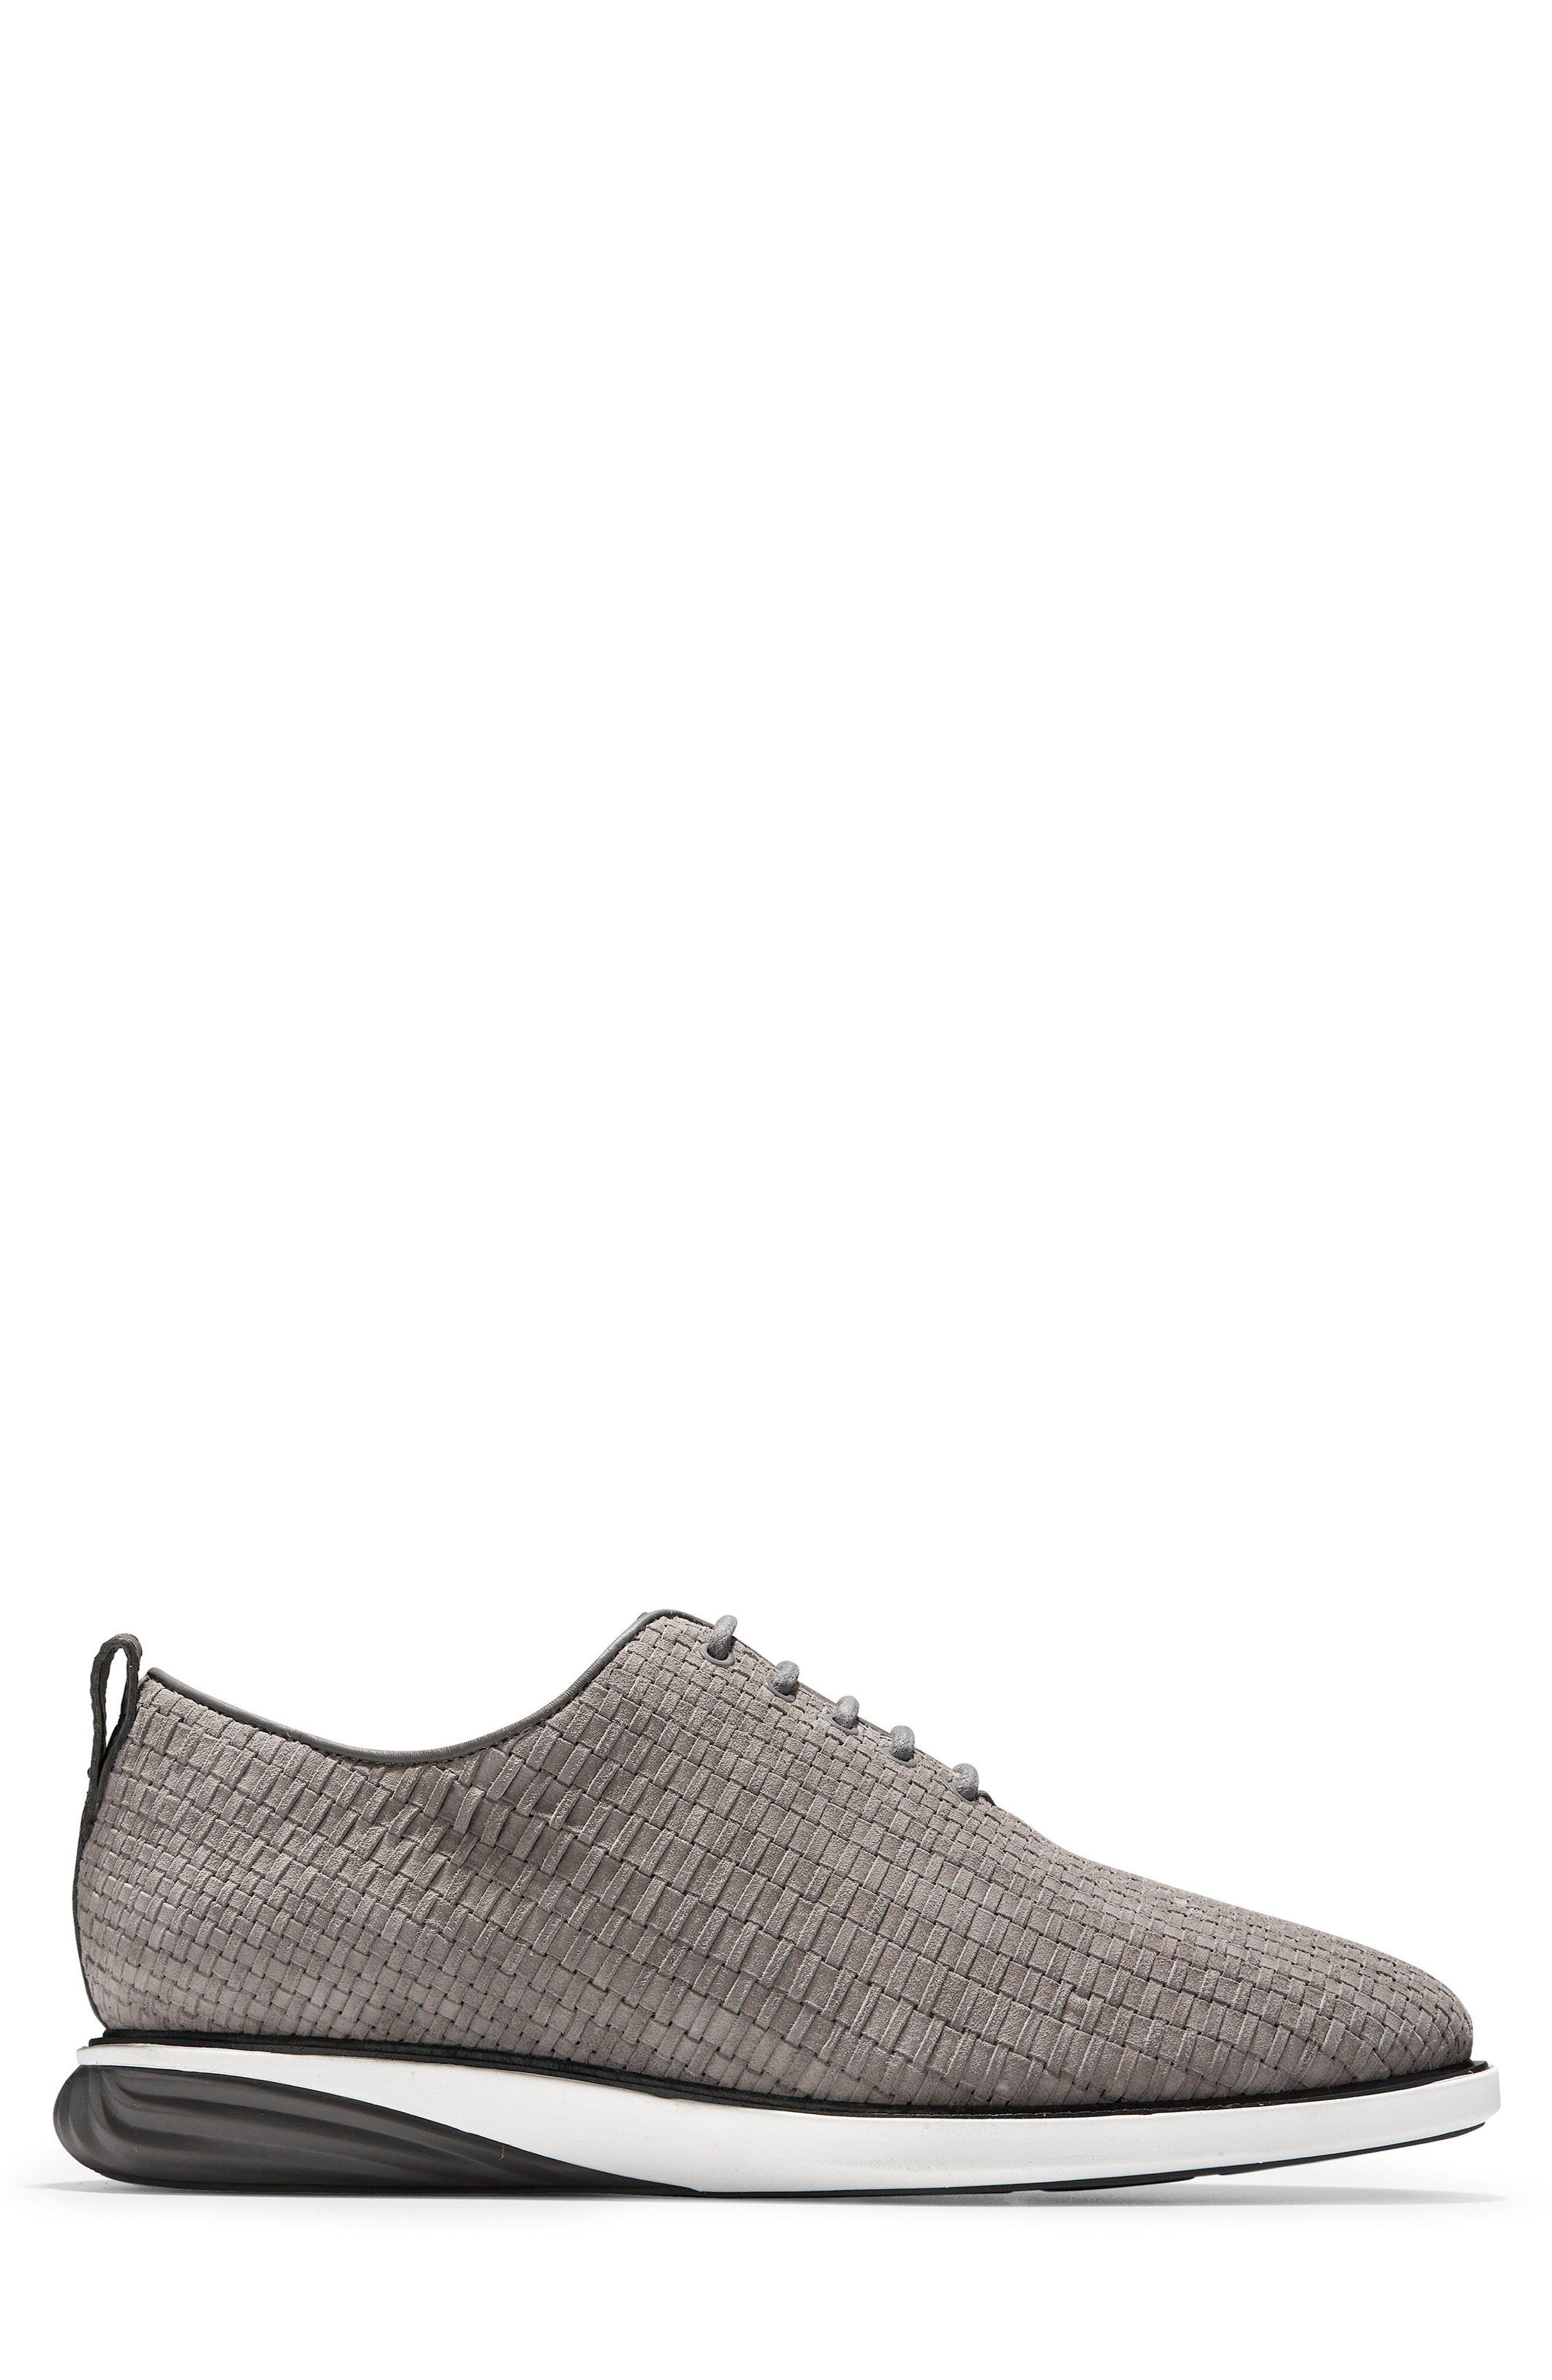 Grand Evolution Woven Oxford,                             Alternate thumbnail 10, color,